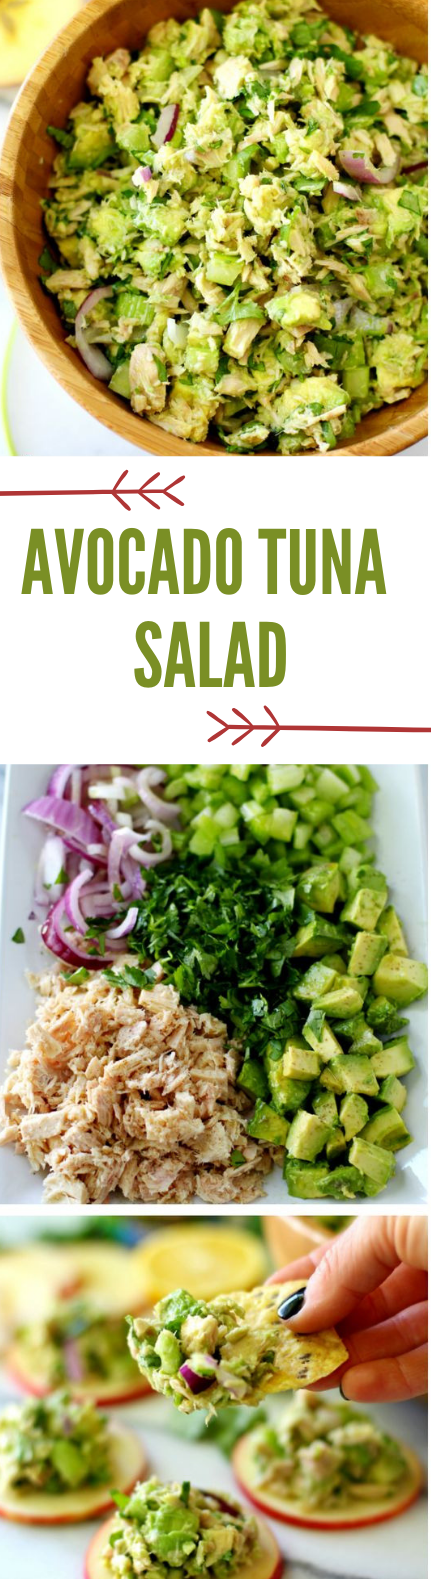 Easy Avocado Tuna Salad #avocado #salad #diet